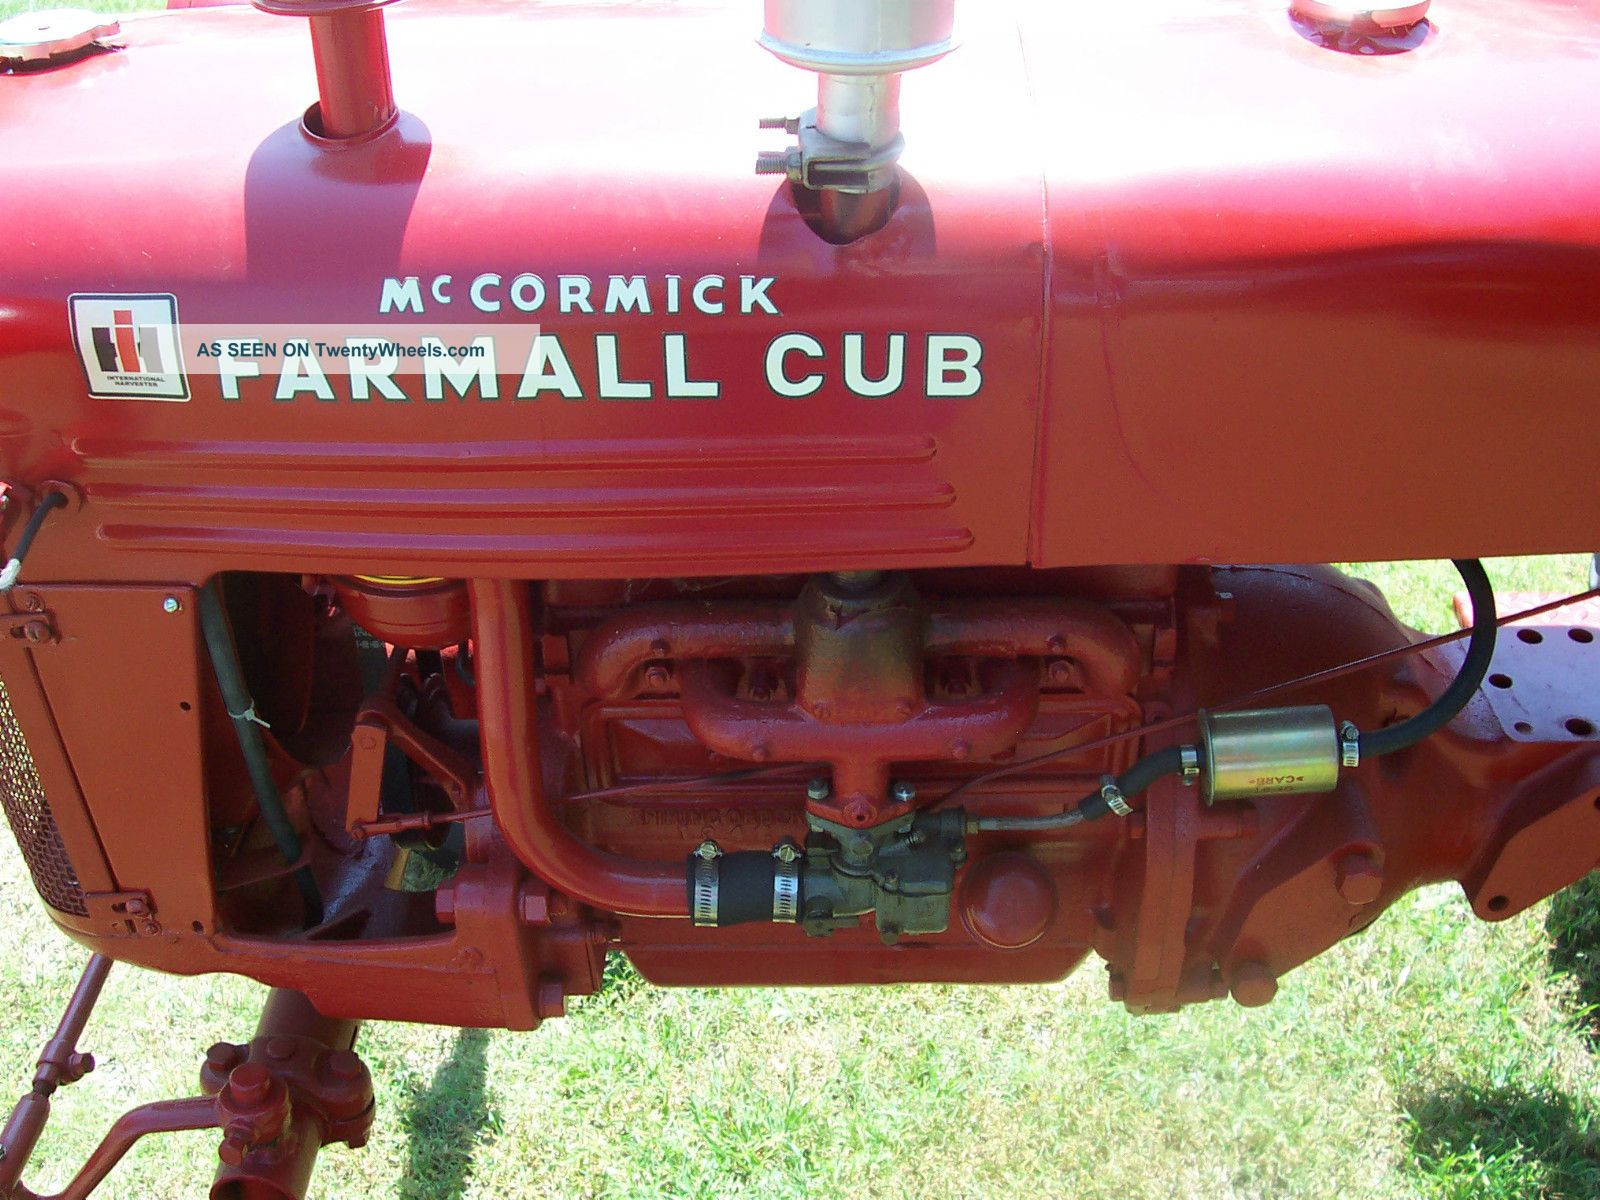 allis chalmers b tractor tractor parts diagram images acirc home 1948 allis chalmers b tractor tractor parts diagram images well honda gx390 wiring diagram likewise farmall